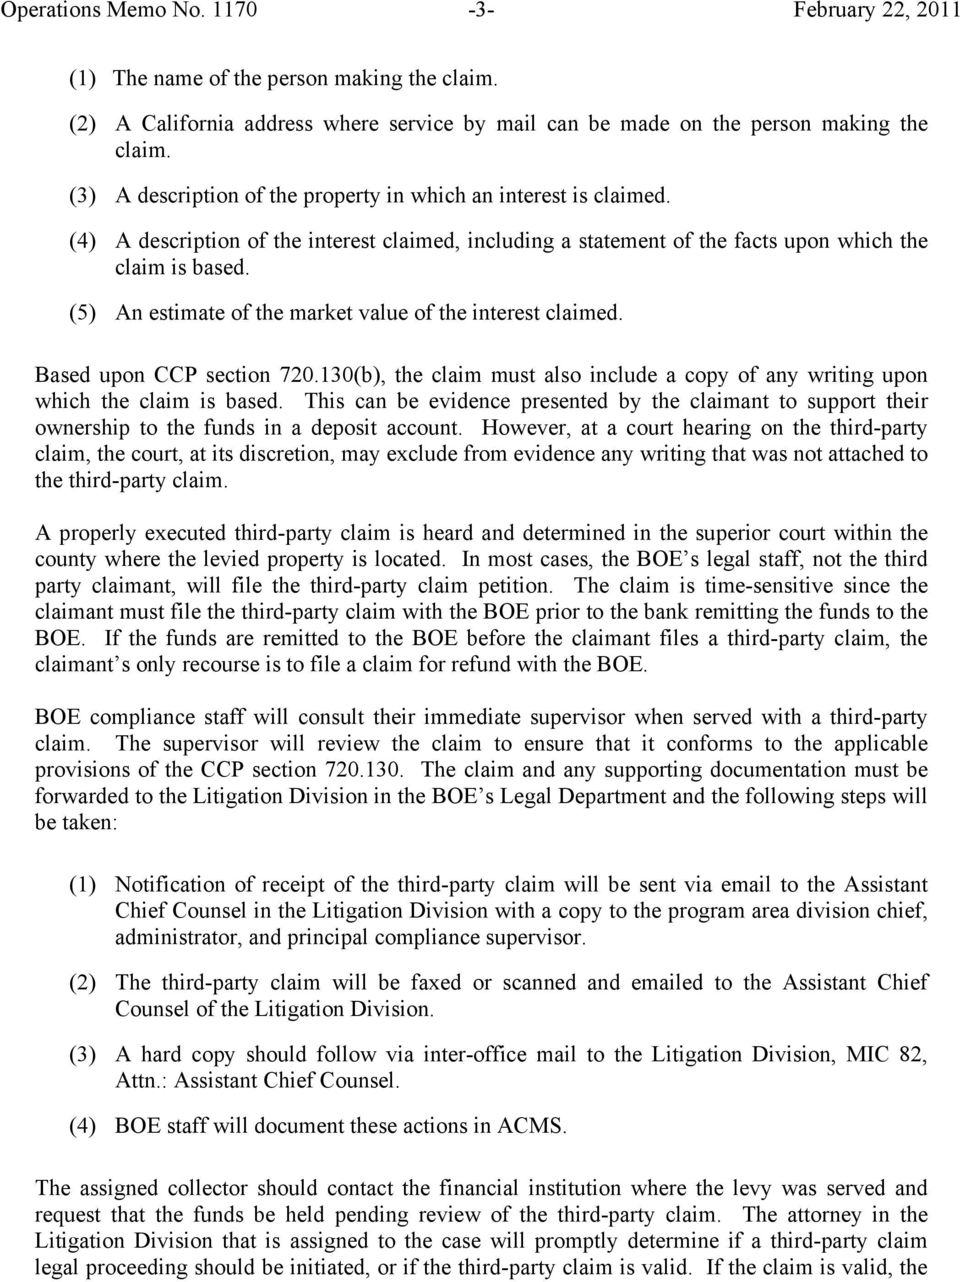 (5) An estimate of the market value of the interest claimed. Based upon CCP section 720.130(b), the claim must also include a copy of any writing upon which the claim is based.